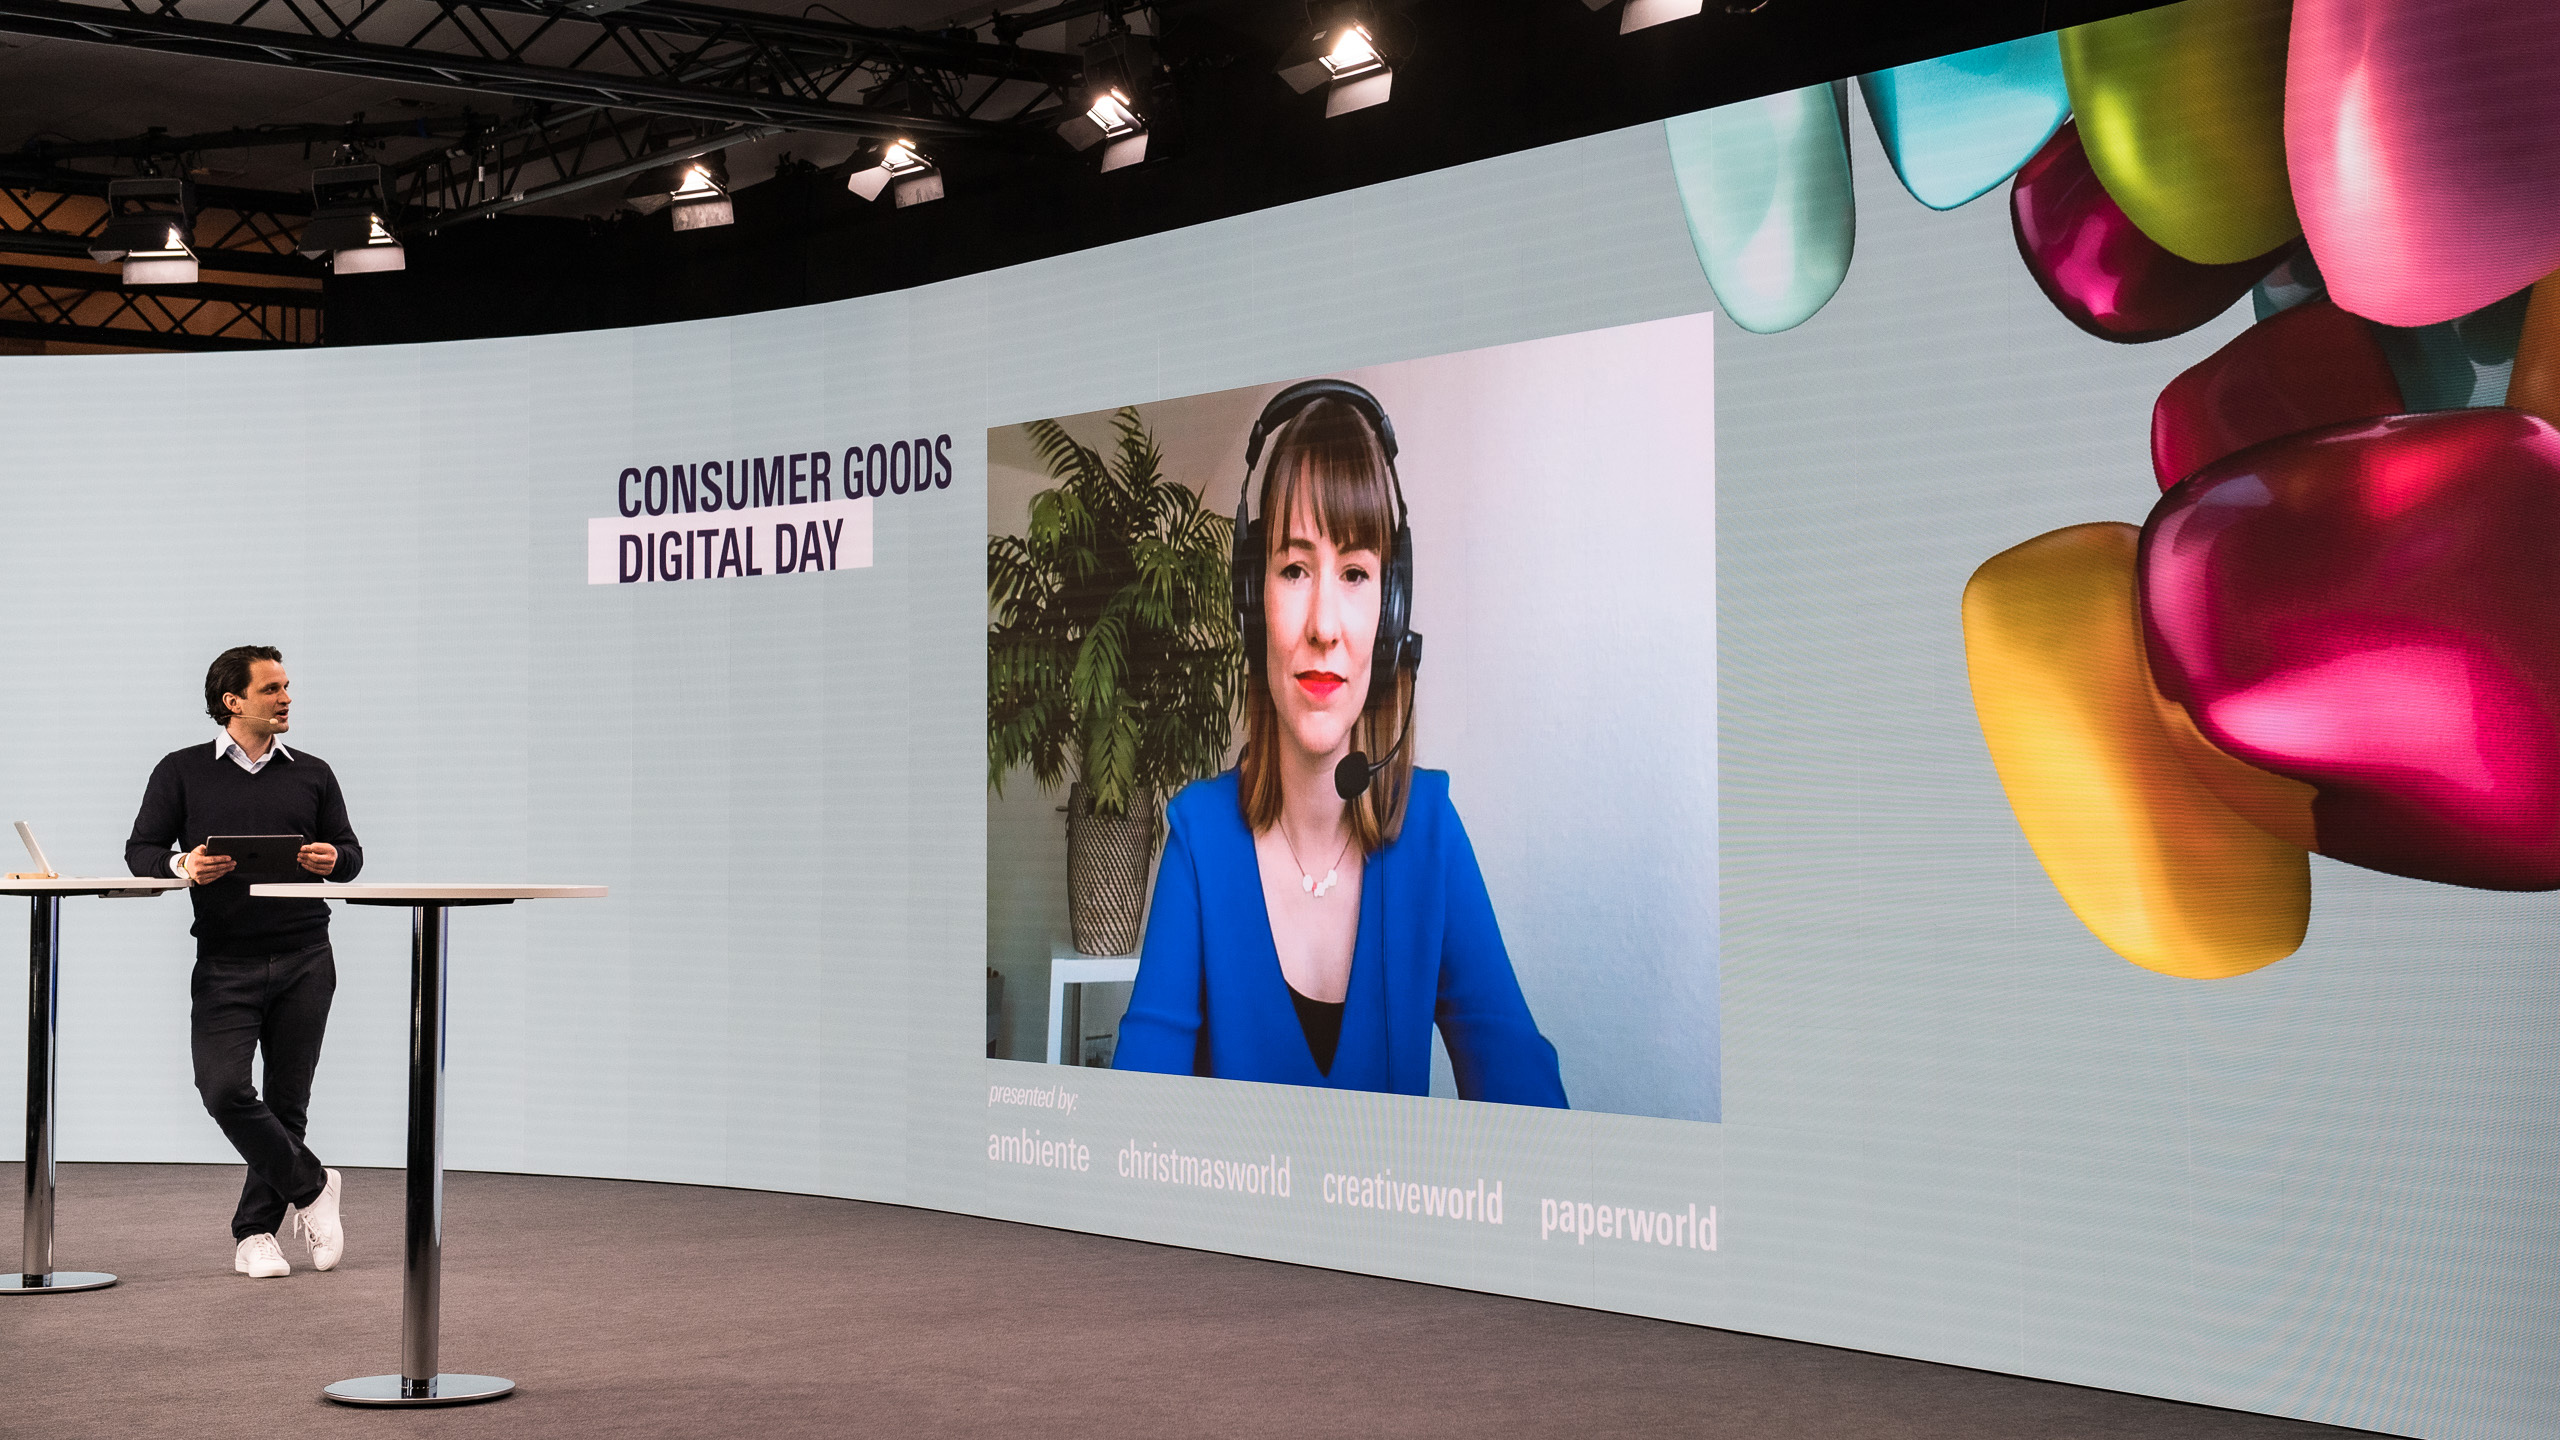 On the main stage of the Consumer Goods Digital Day, as on the screens, the focus of the discussion was on professional exchange. Photo: Messe Frankfurt/Sutera